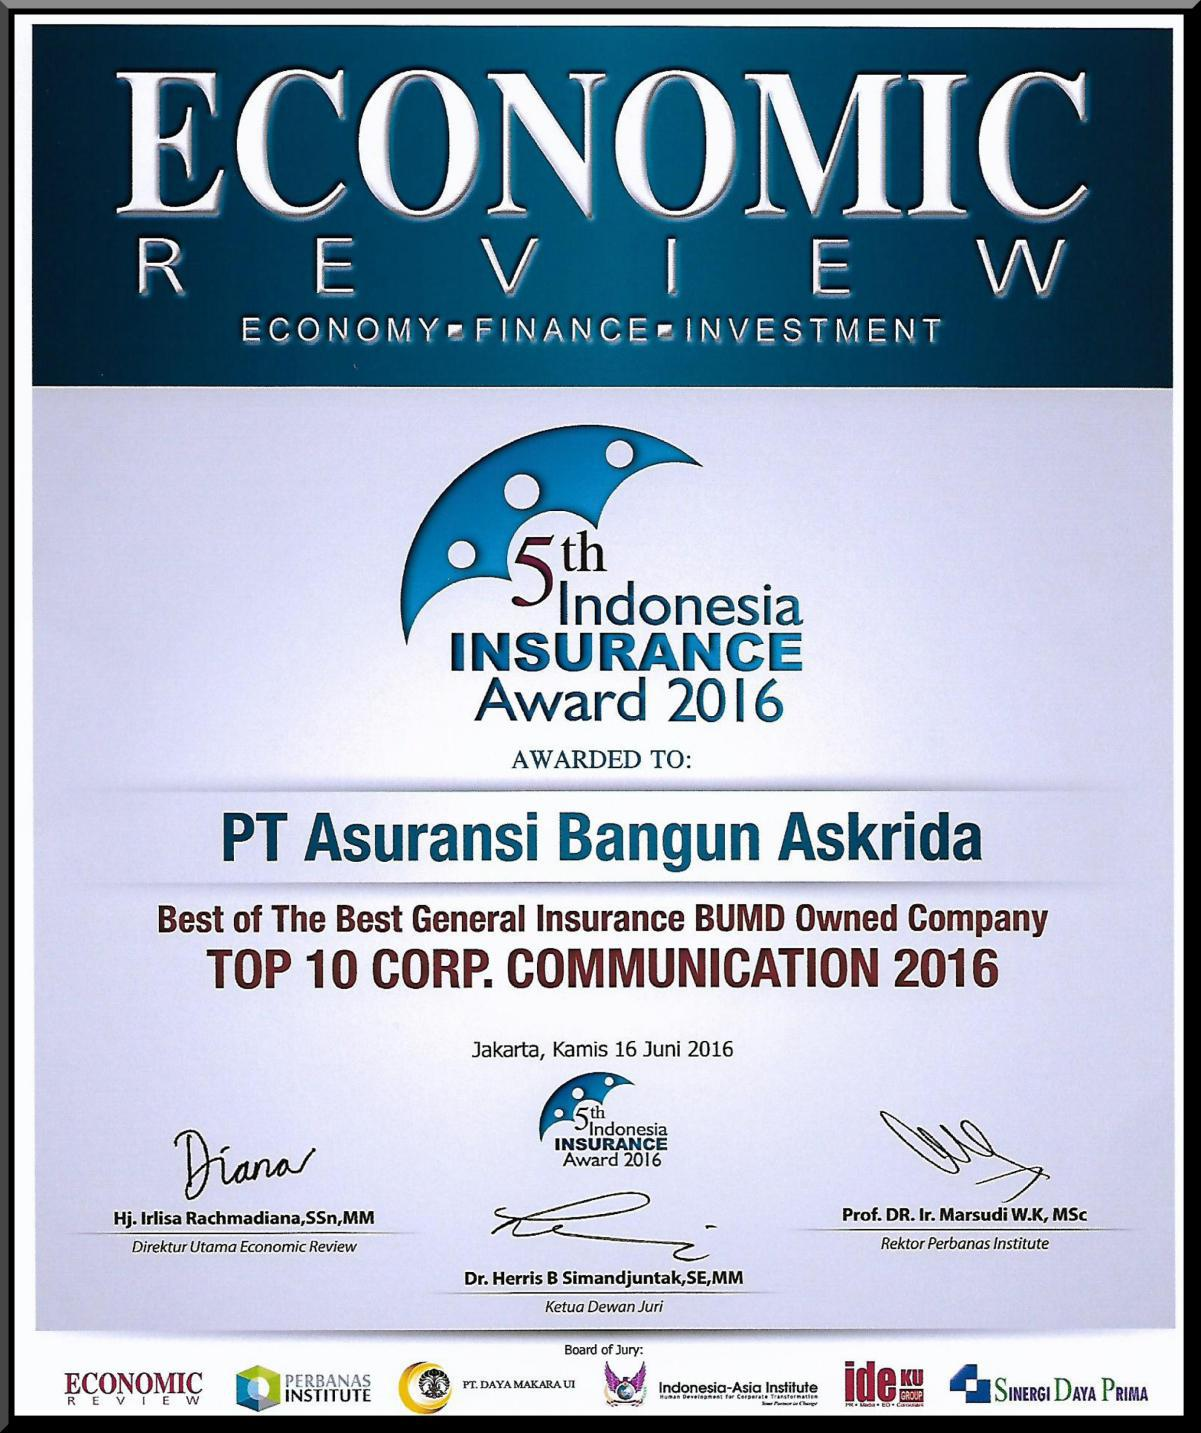 PENGHARGAAN TOP 10 CORP. COMMUNICATION 2016 (ECONOMIC REVIEWS)